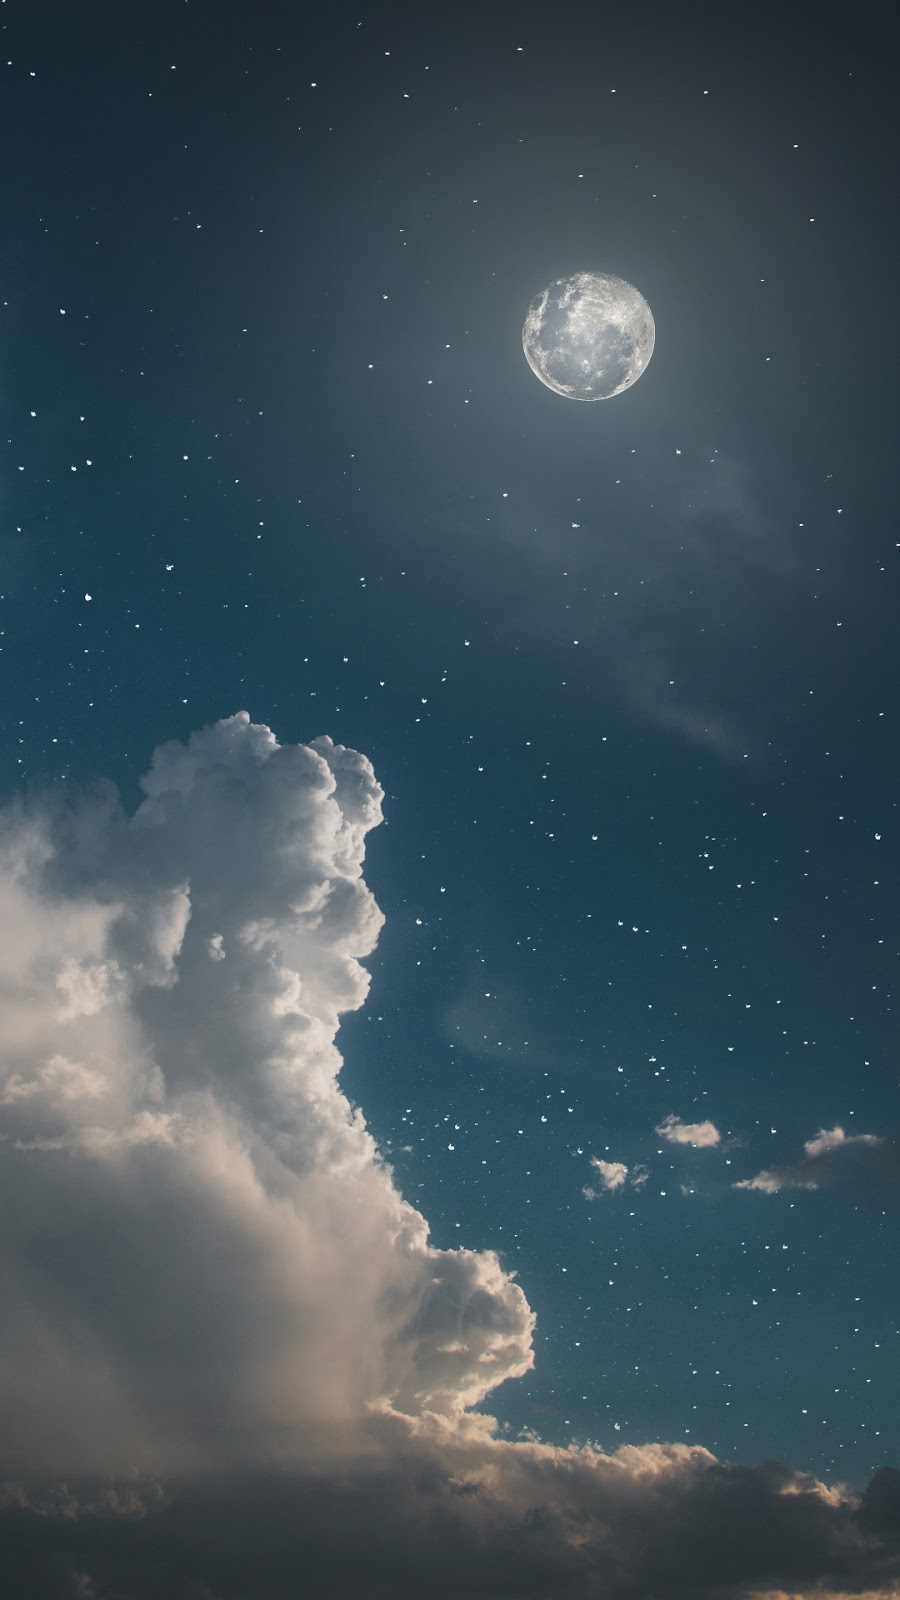 Night sky aesthetic wallpaper